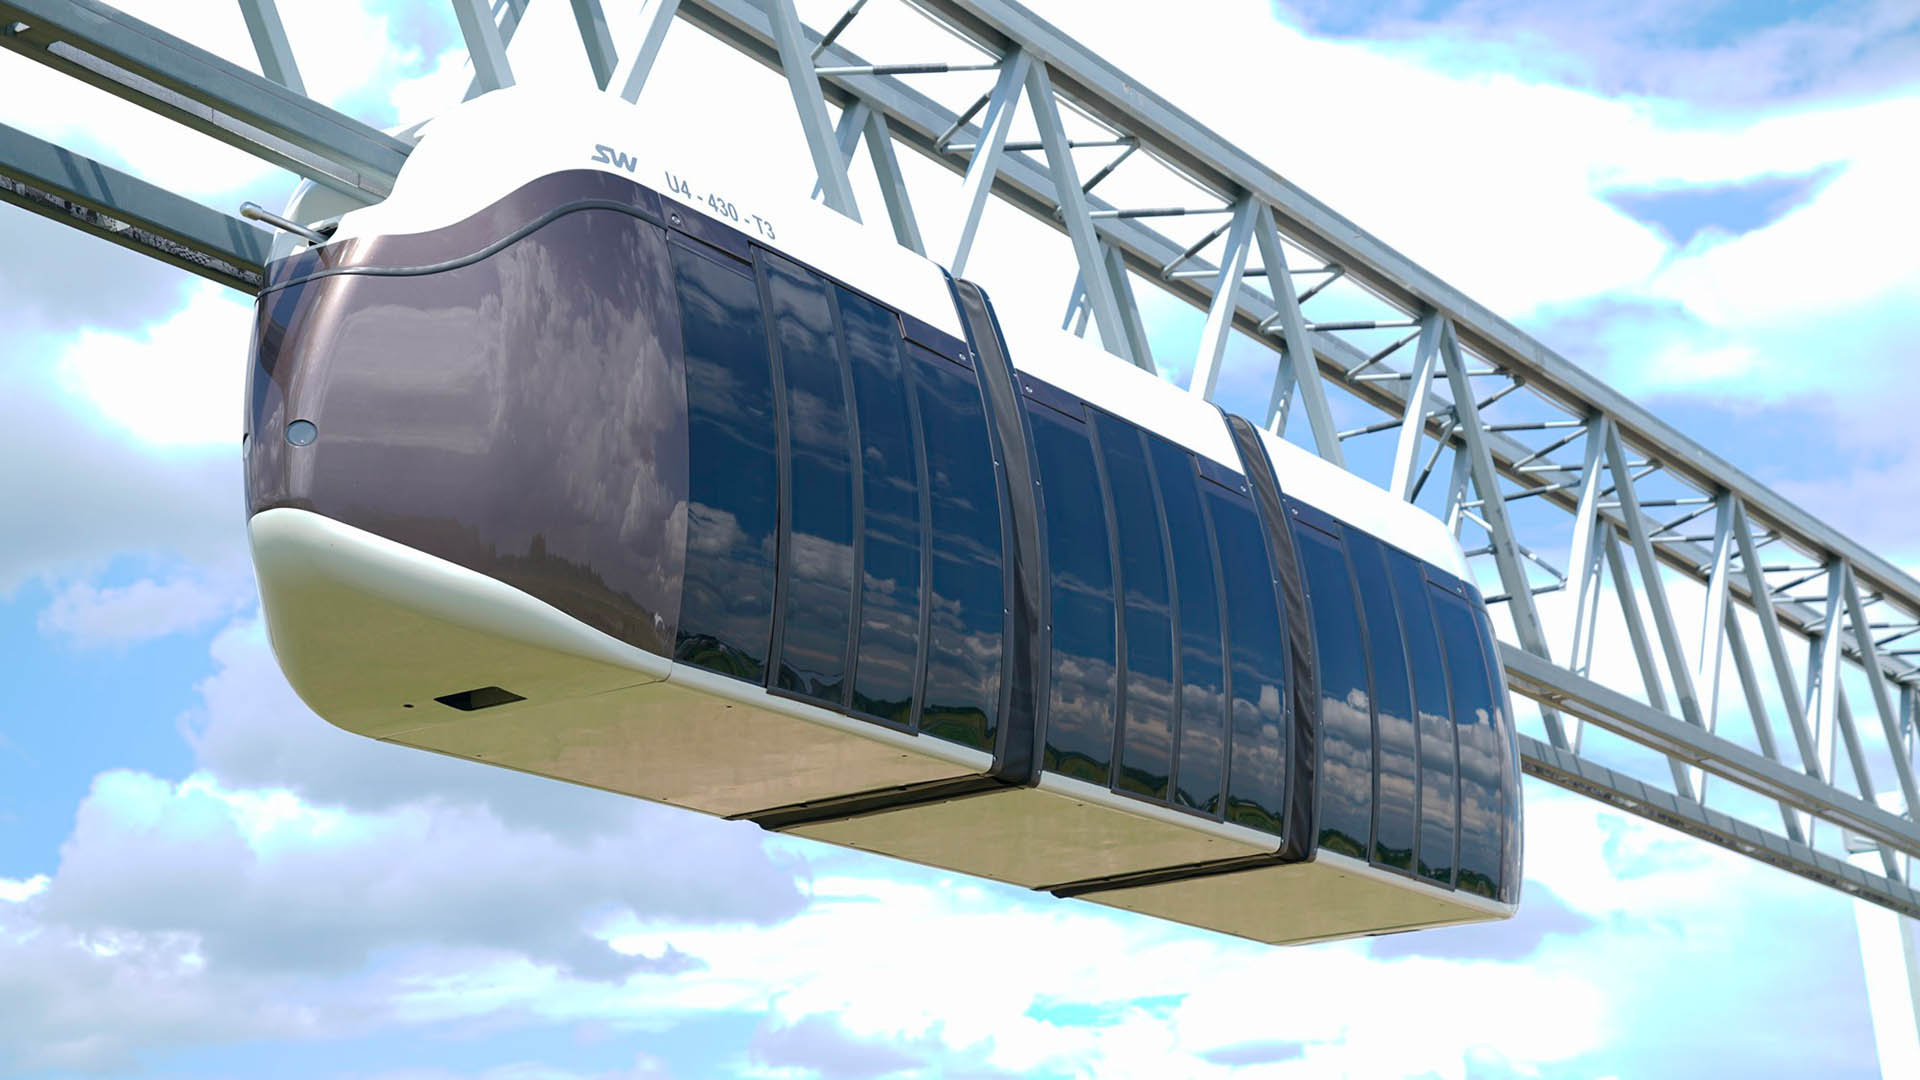 SkyWay, Sky Way, SkyWay in Belarus Yunitsky, string transport, technology, development, SkyWorld, program